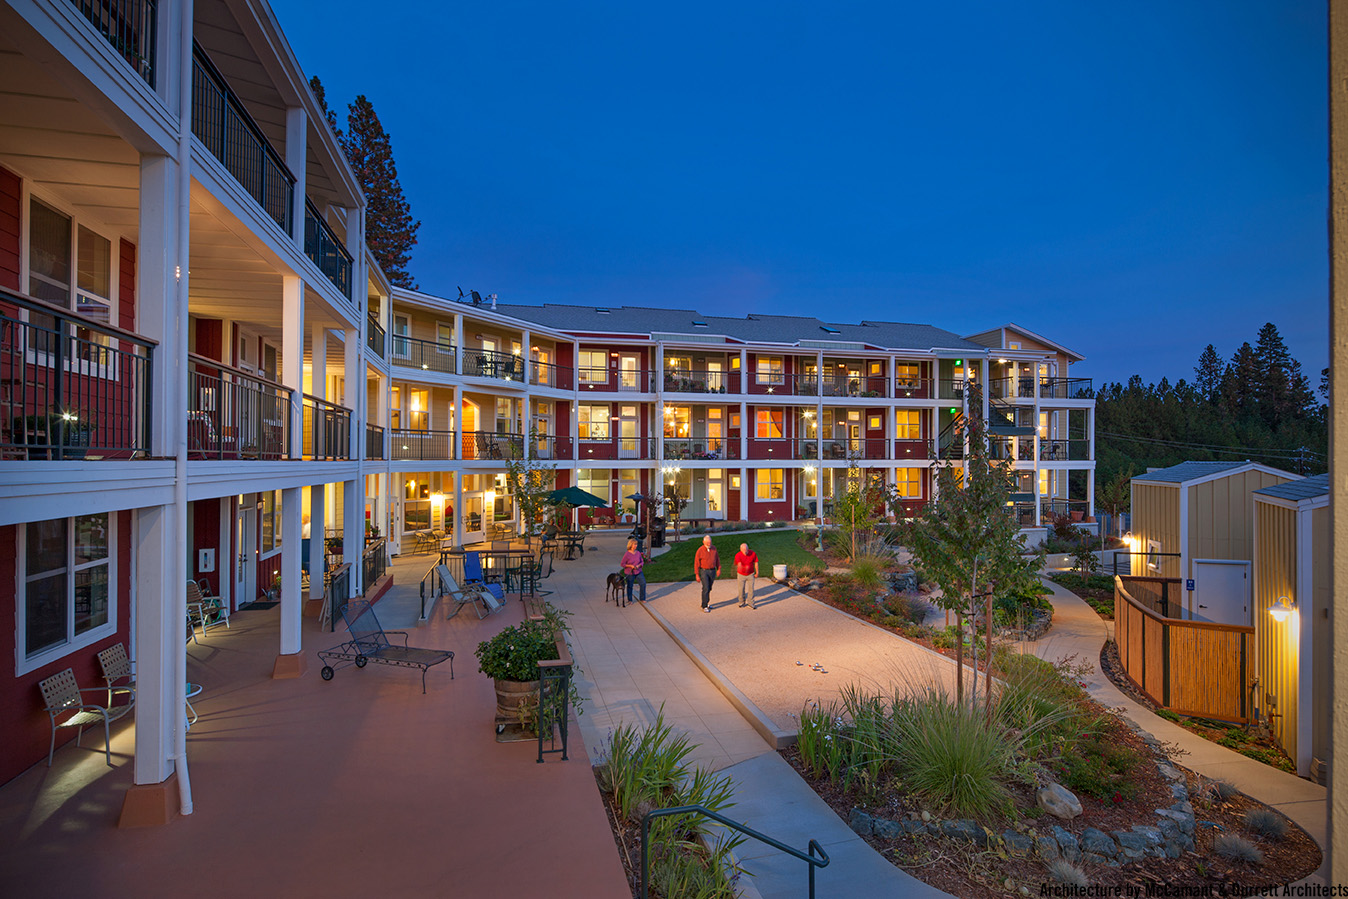 Wolf Creek Lodge, Grass Valley, CA. Architecture by McCamant & Durrett Architects